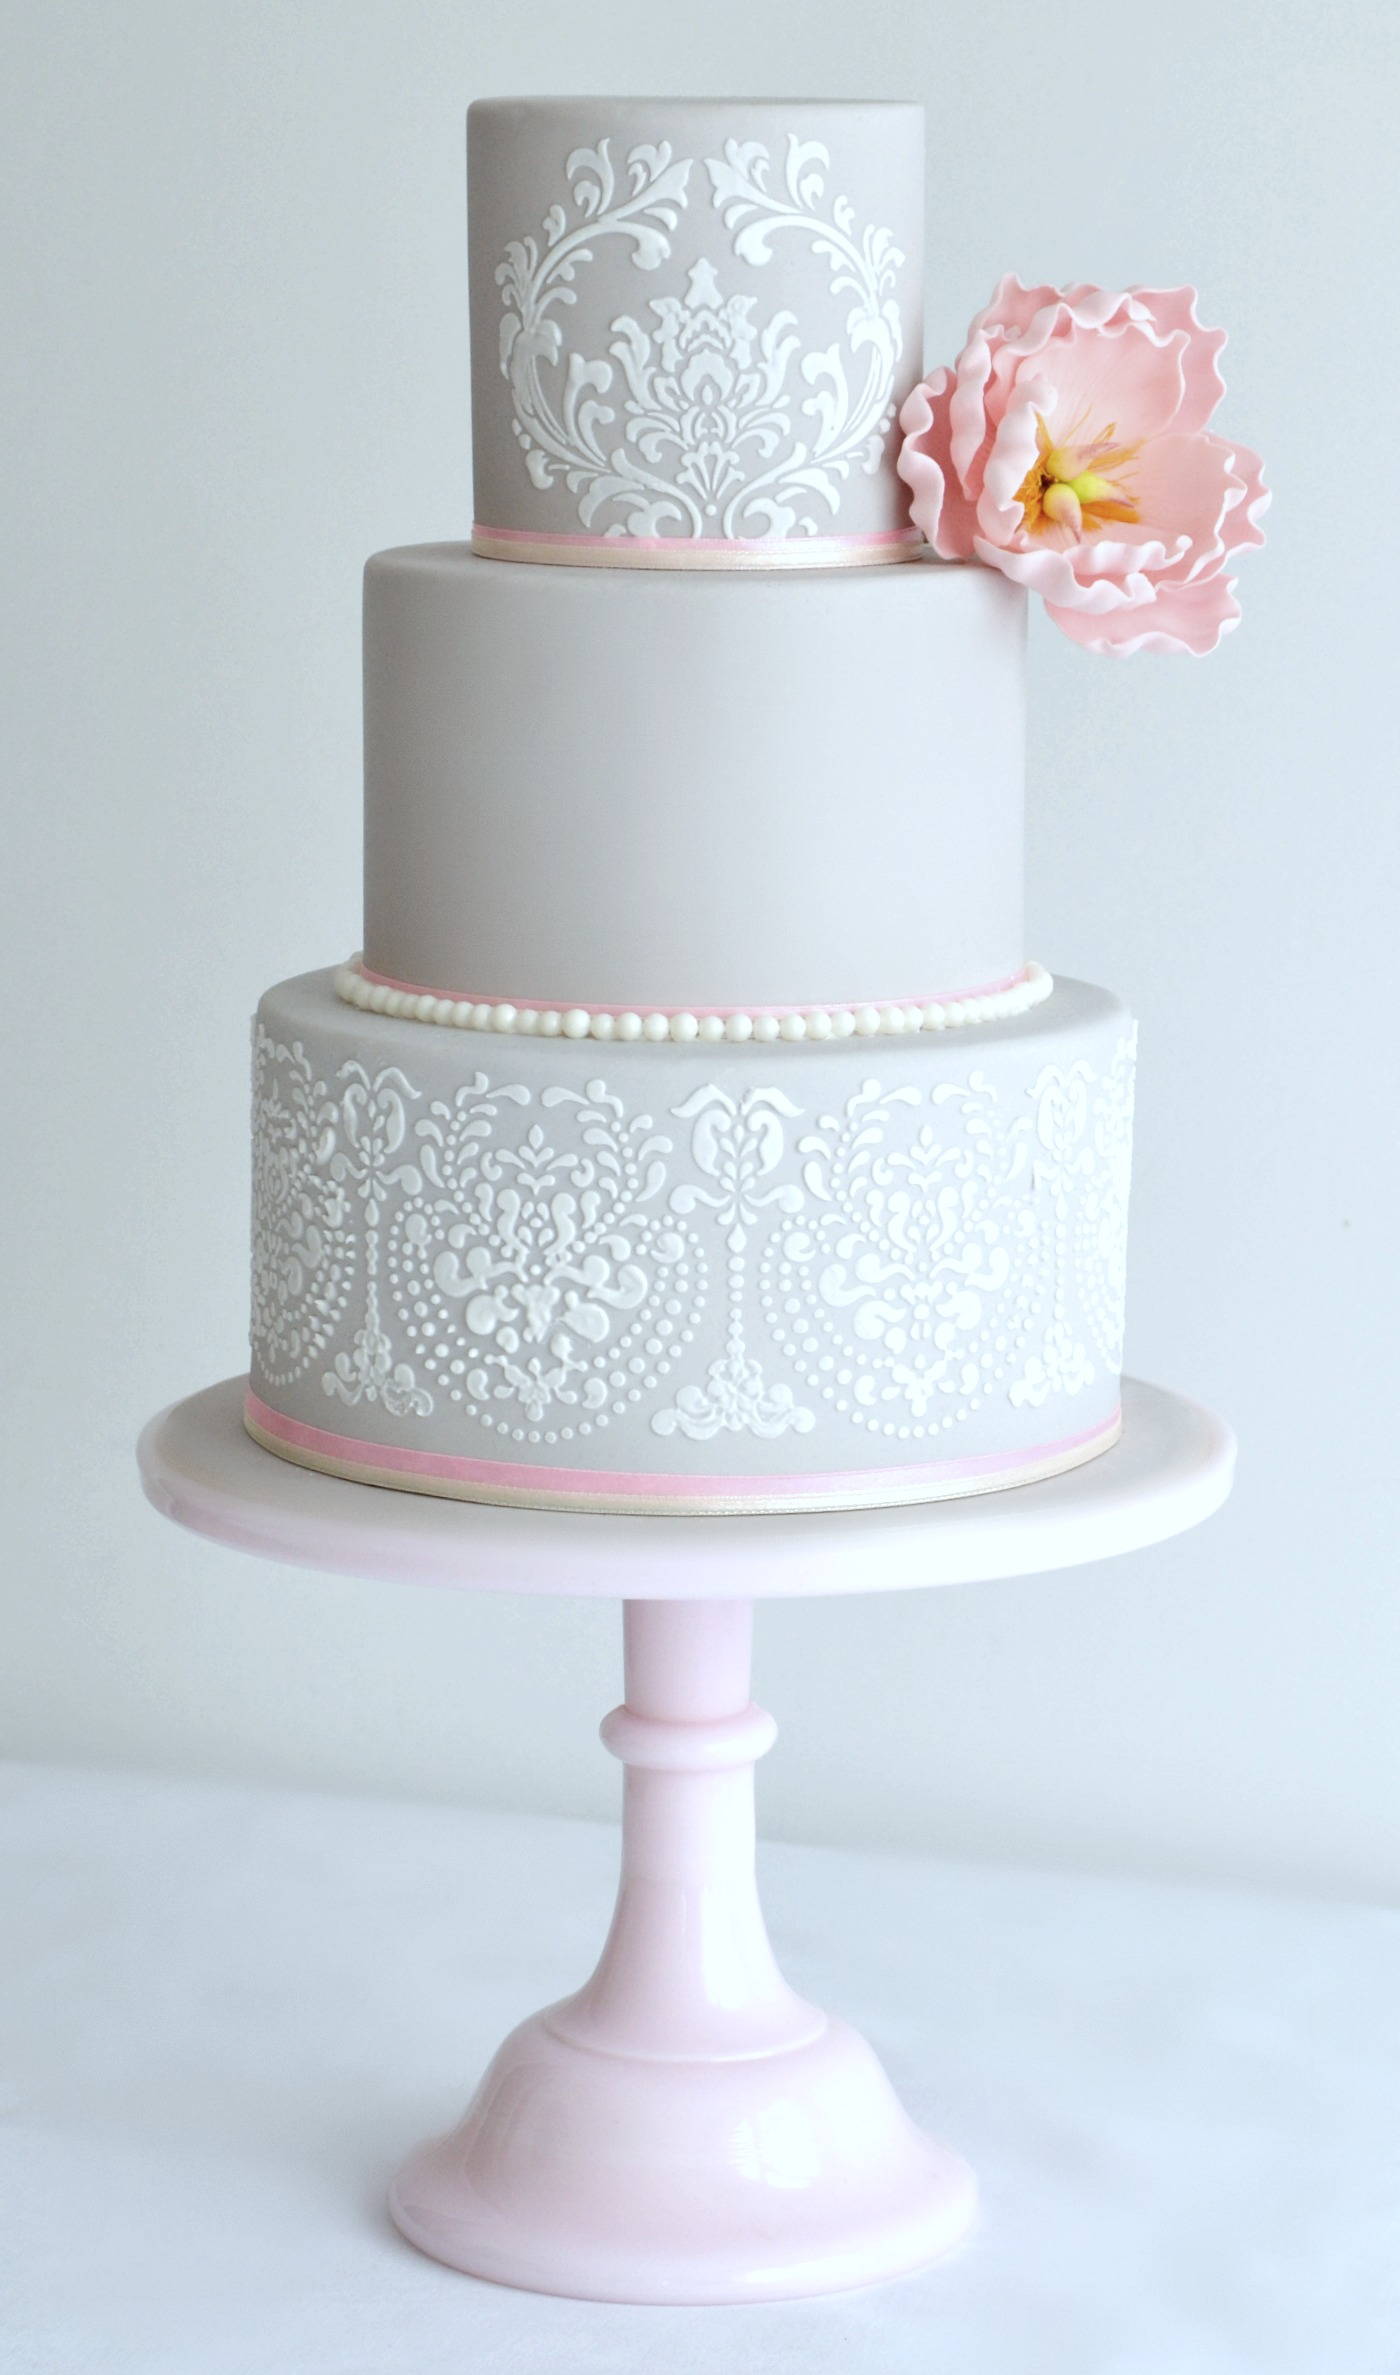 3 Tier dove grey wedding cake